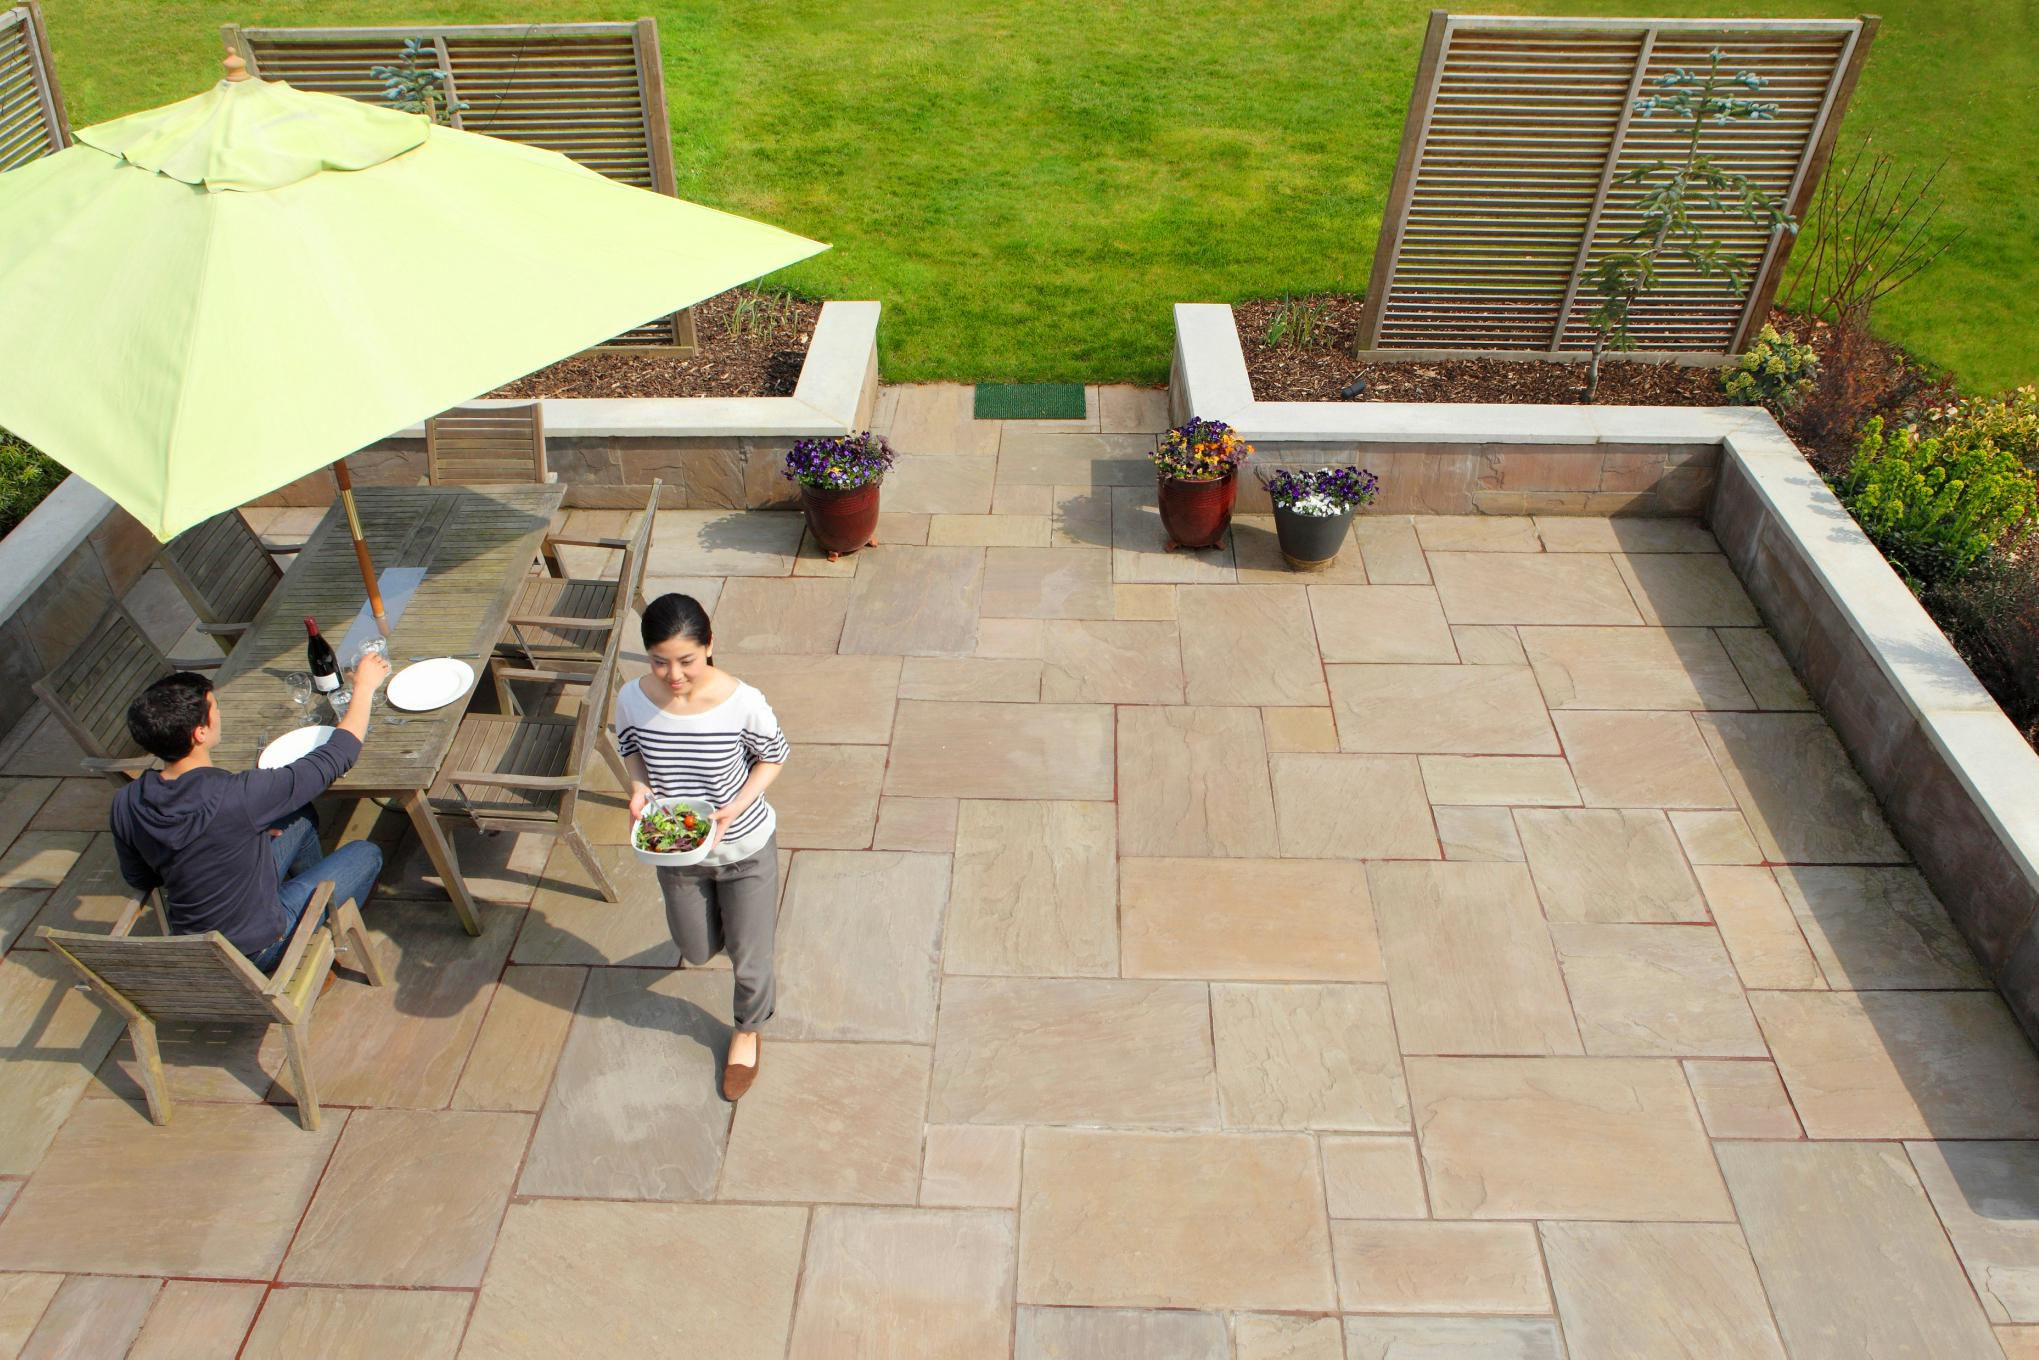 Best ideas about Outdoor Patio Tile . Save or Pin Outdoor Patio Tile How to Choose the Right Type Now.